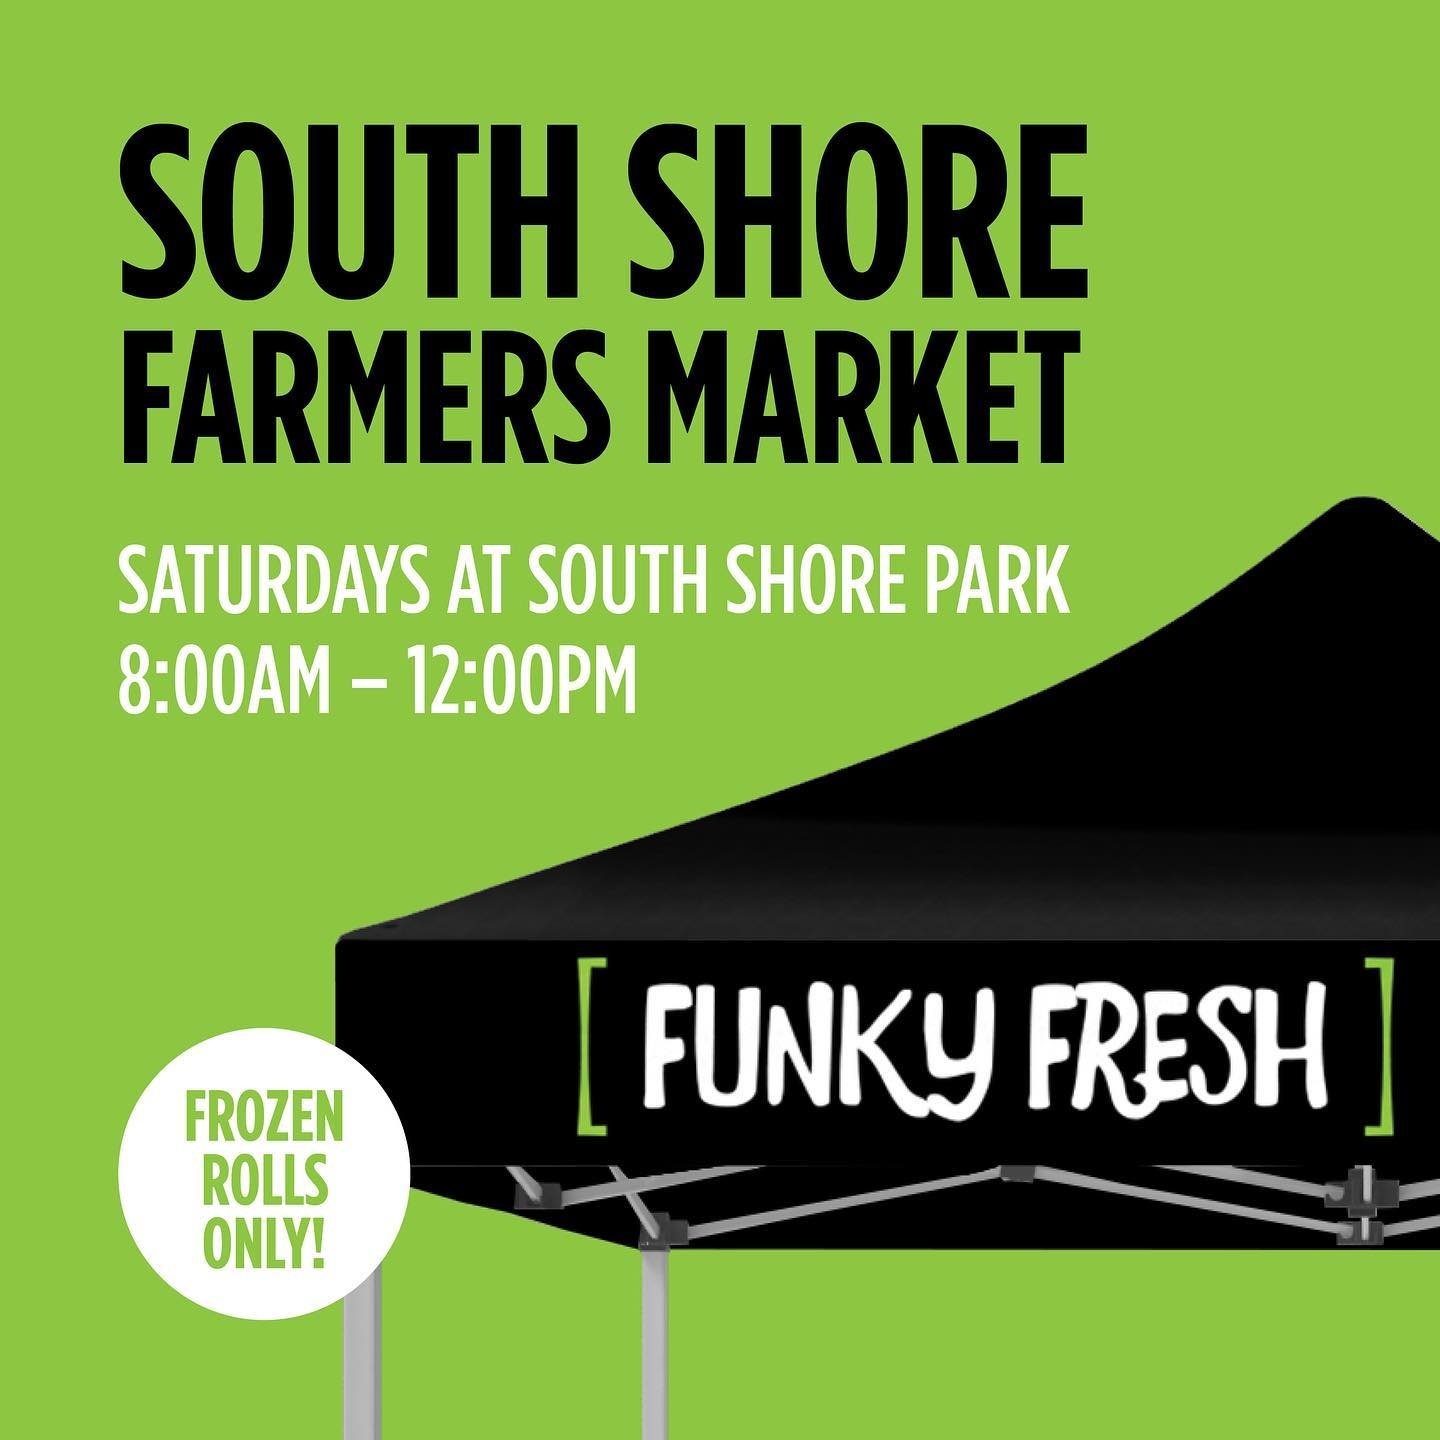 Funky Fresh Spring Rolls at the South Shore Farmer's Market